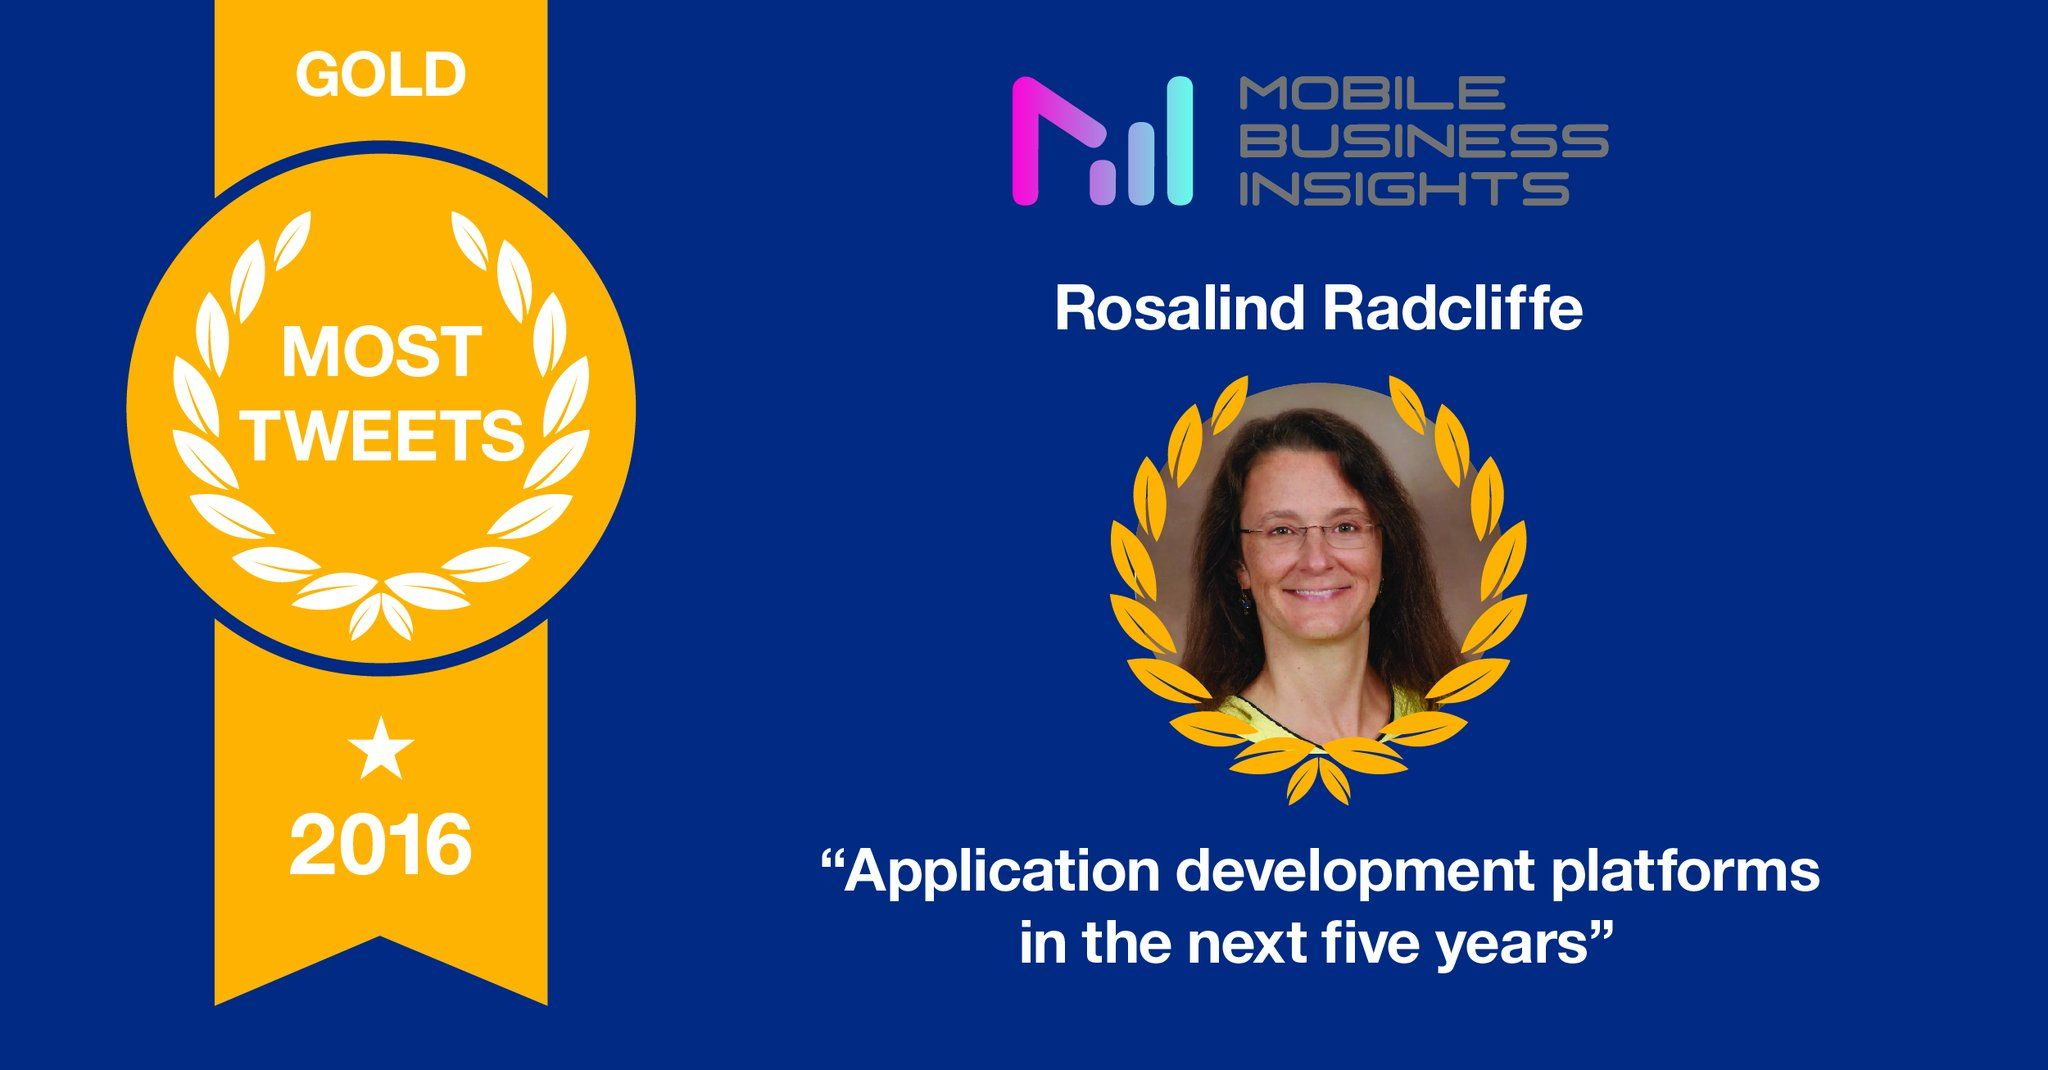 #Mobileapp Check out why RosalindRadSee made top 10 #MobileInsights posts w/ the most tweets in 2016.  https://t.co/kHZF519jRB